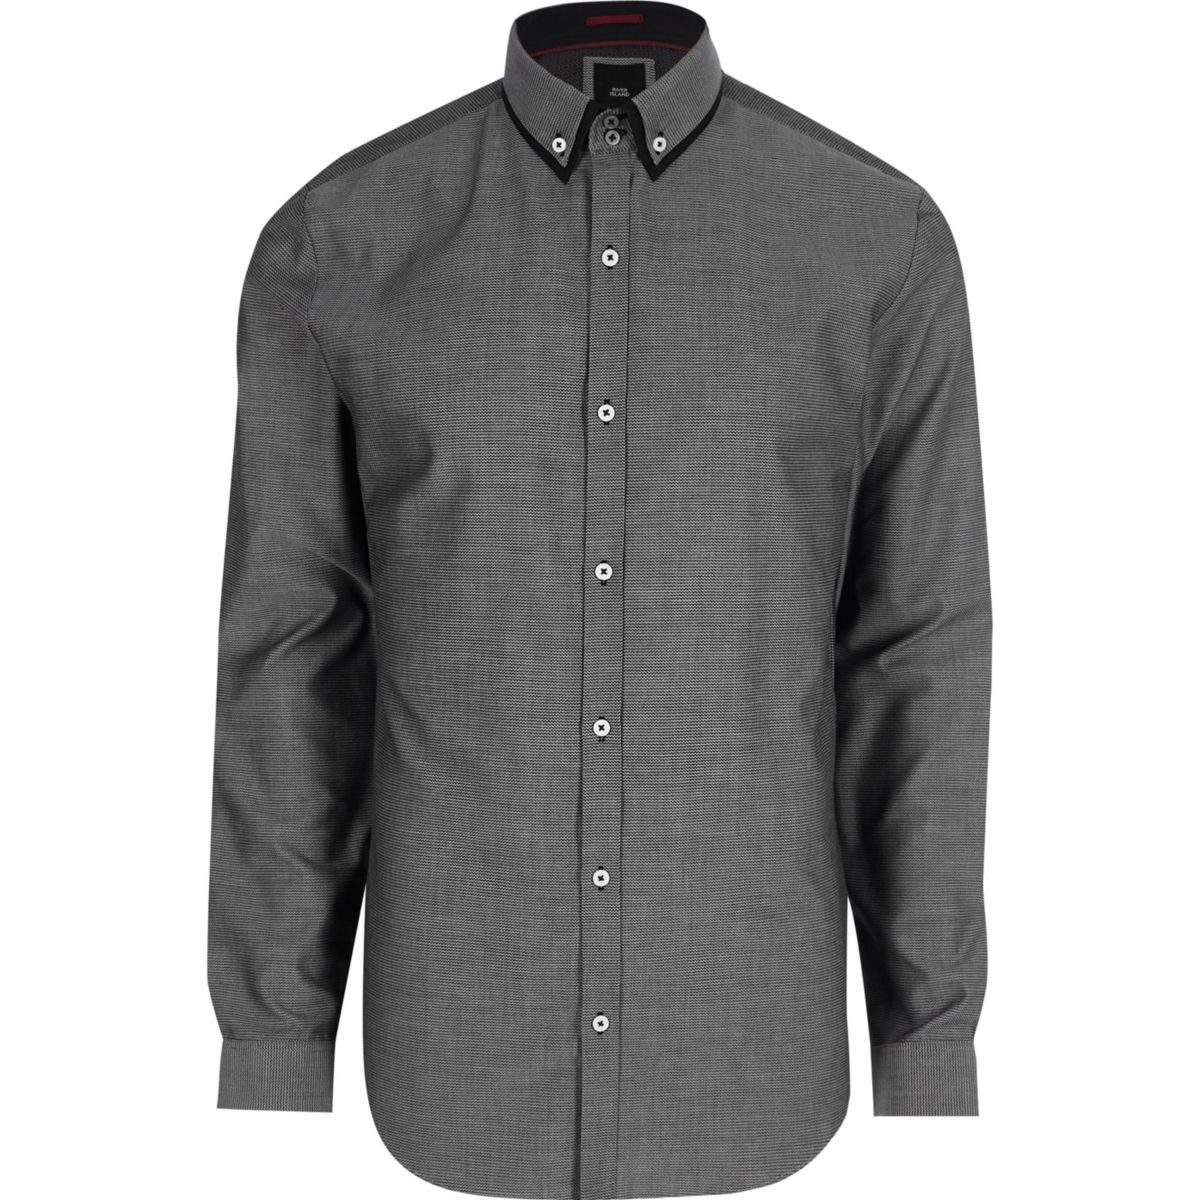 Big and Tall grey double collar shirt